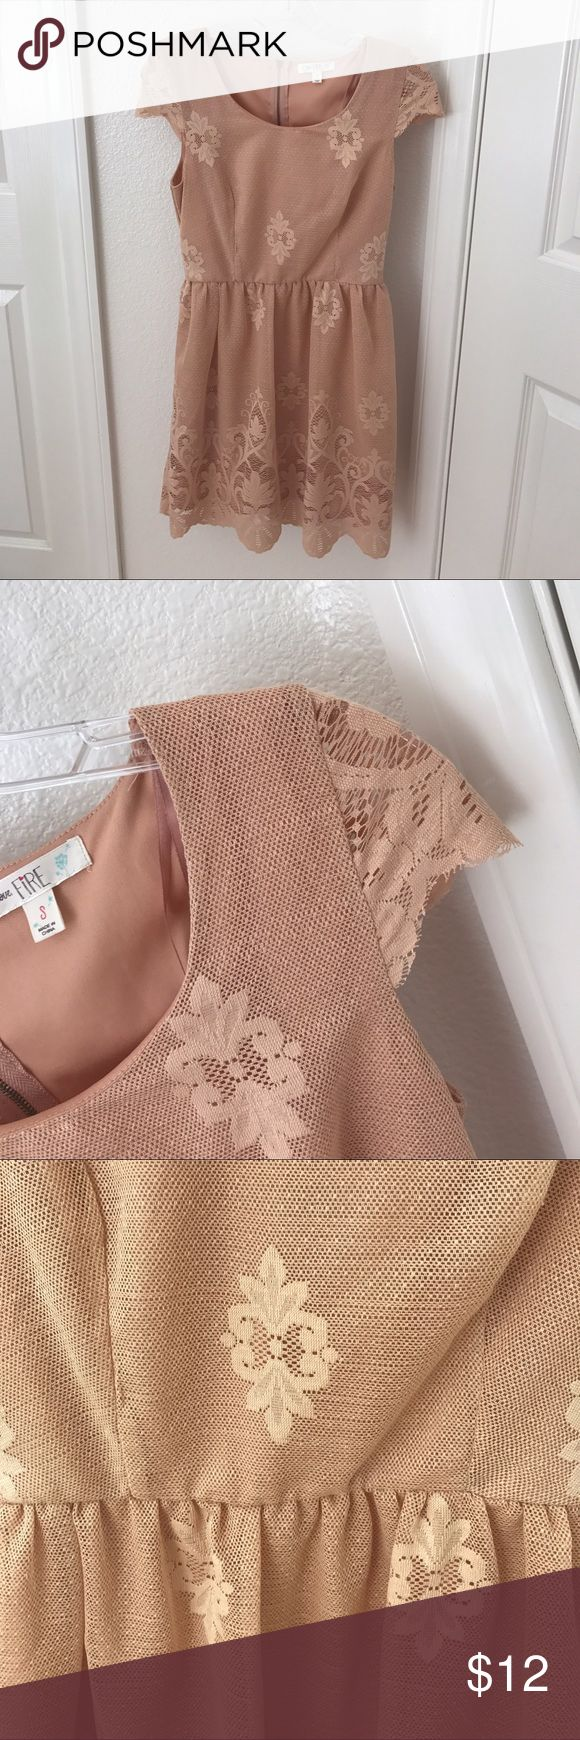 Peachy tan lace dress Good condition. I wore this for all of an hour to church!!! Dresses Mini